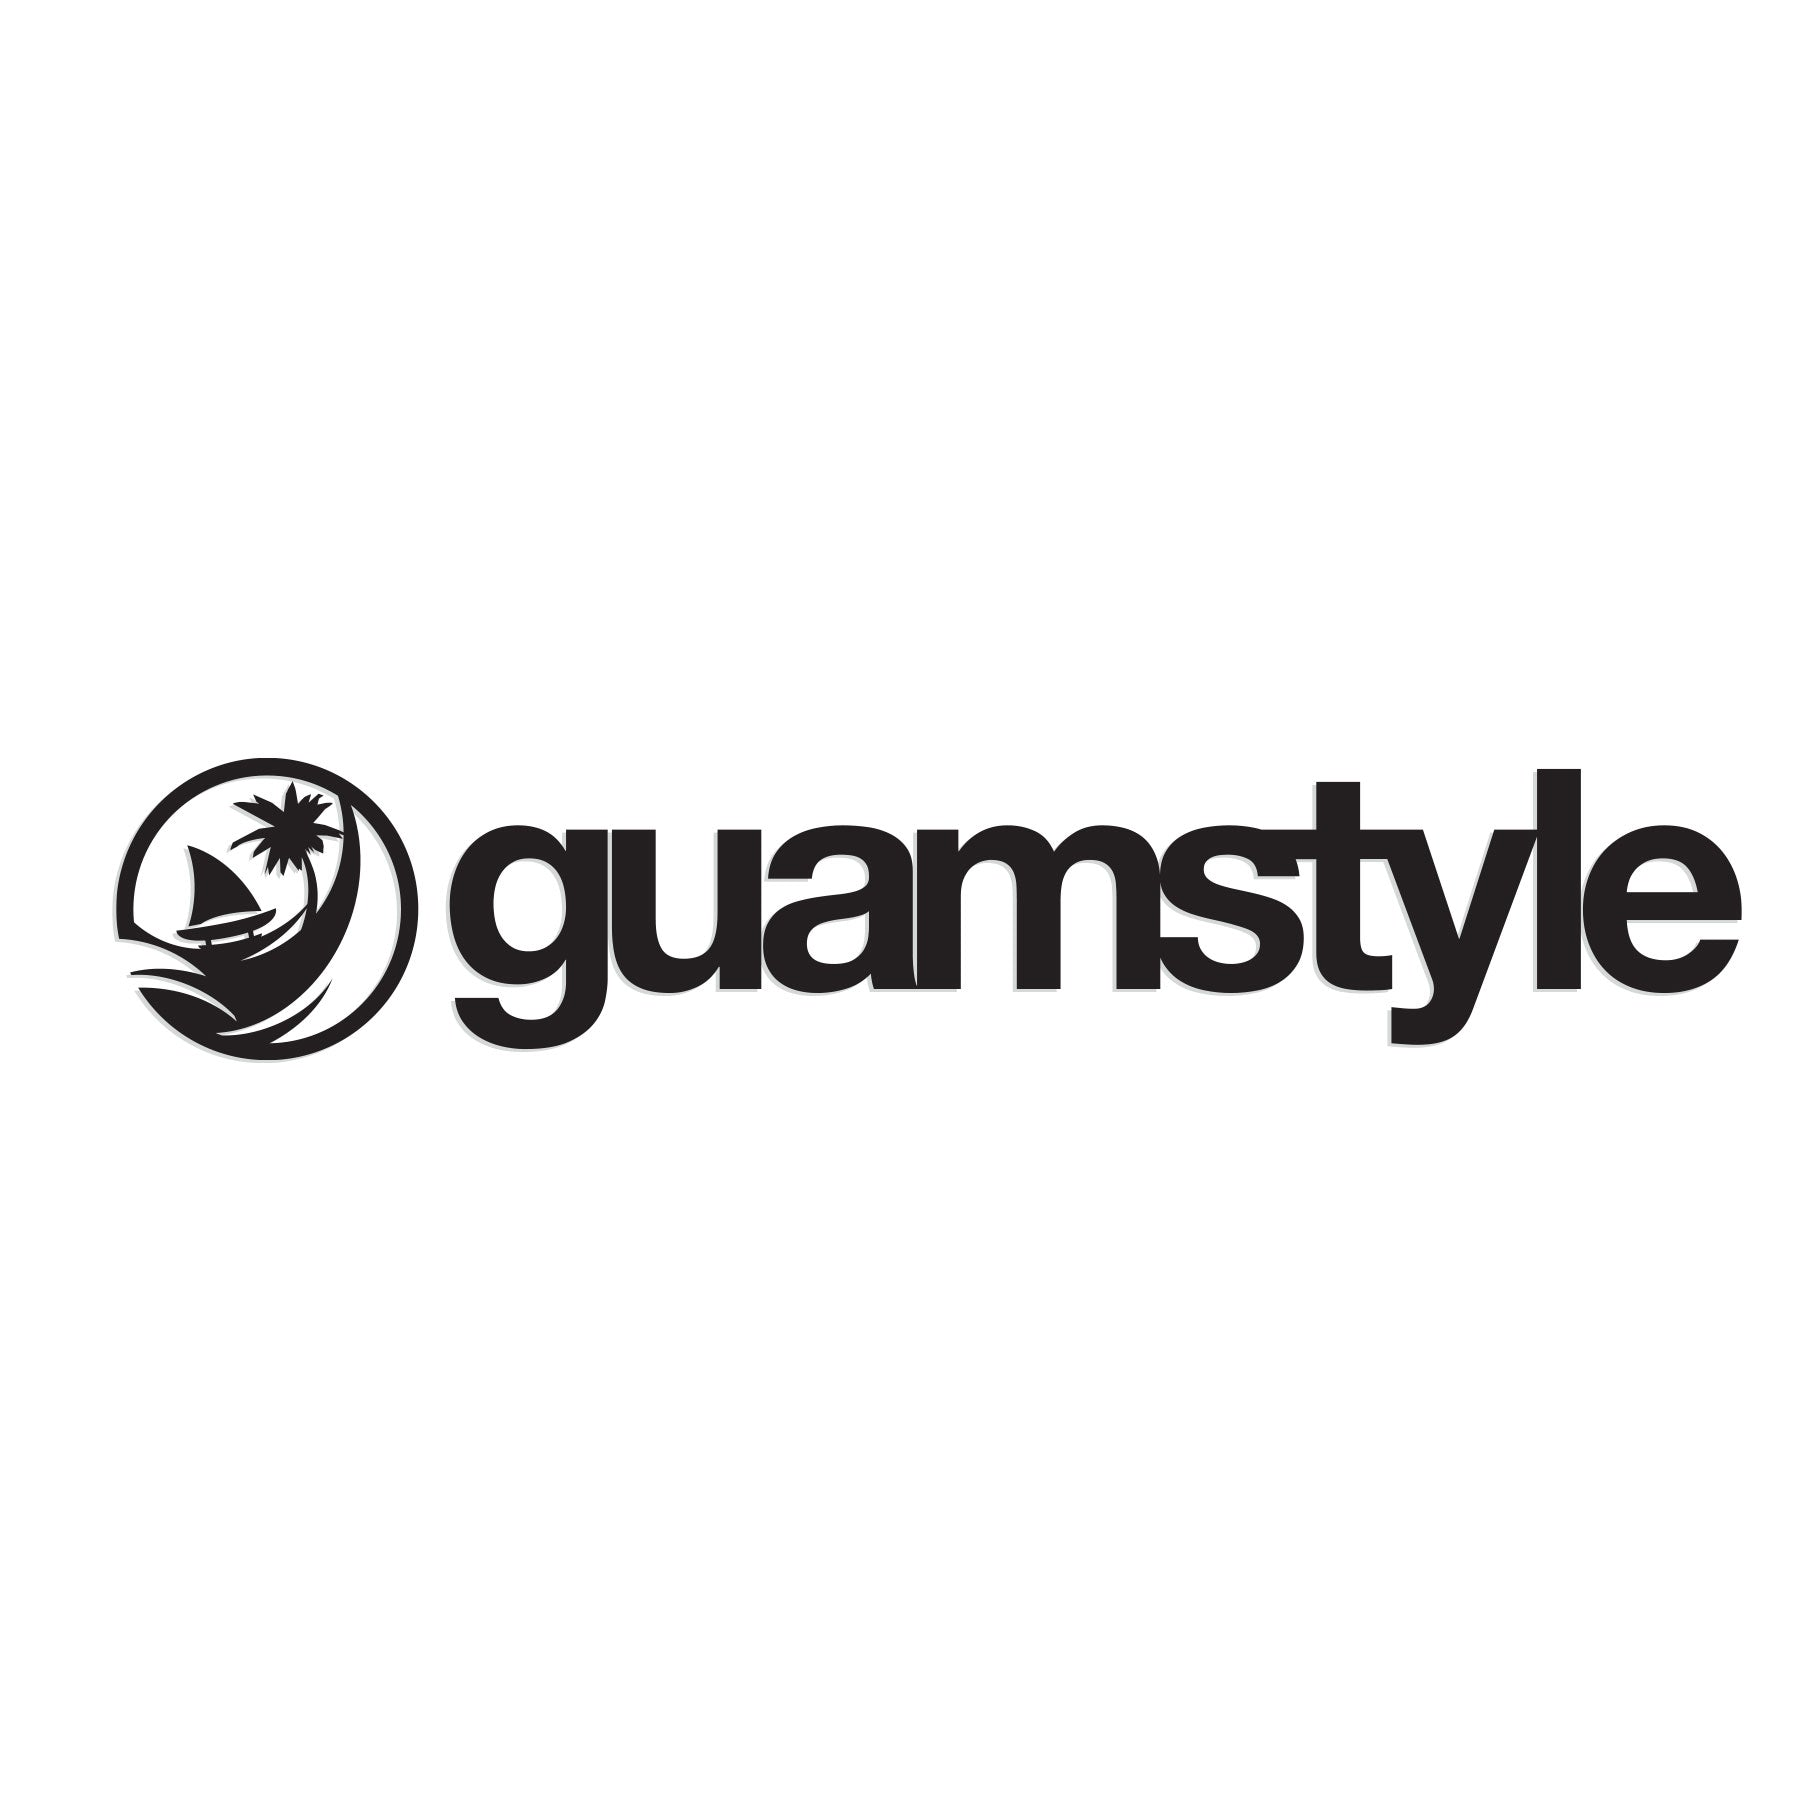 Guamstyle Black Decal